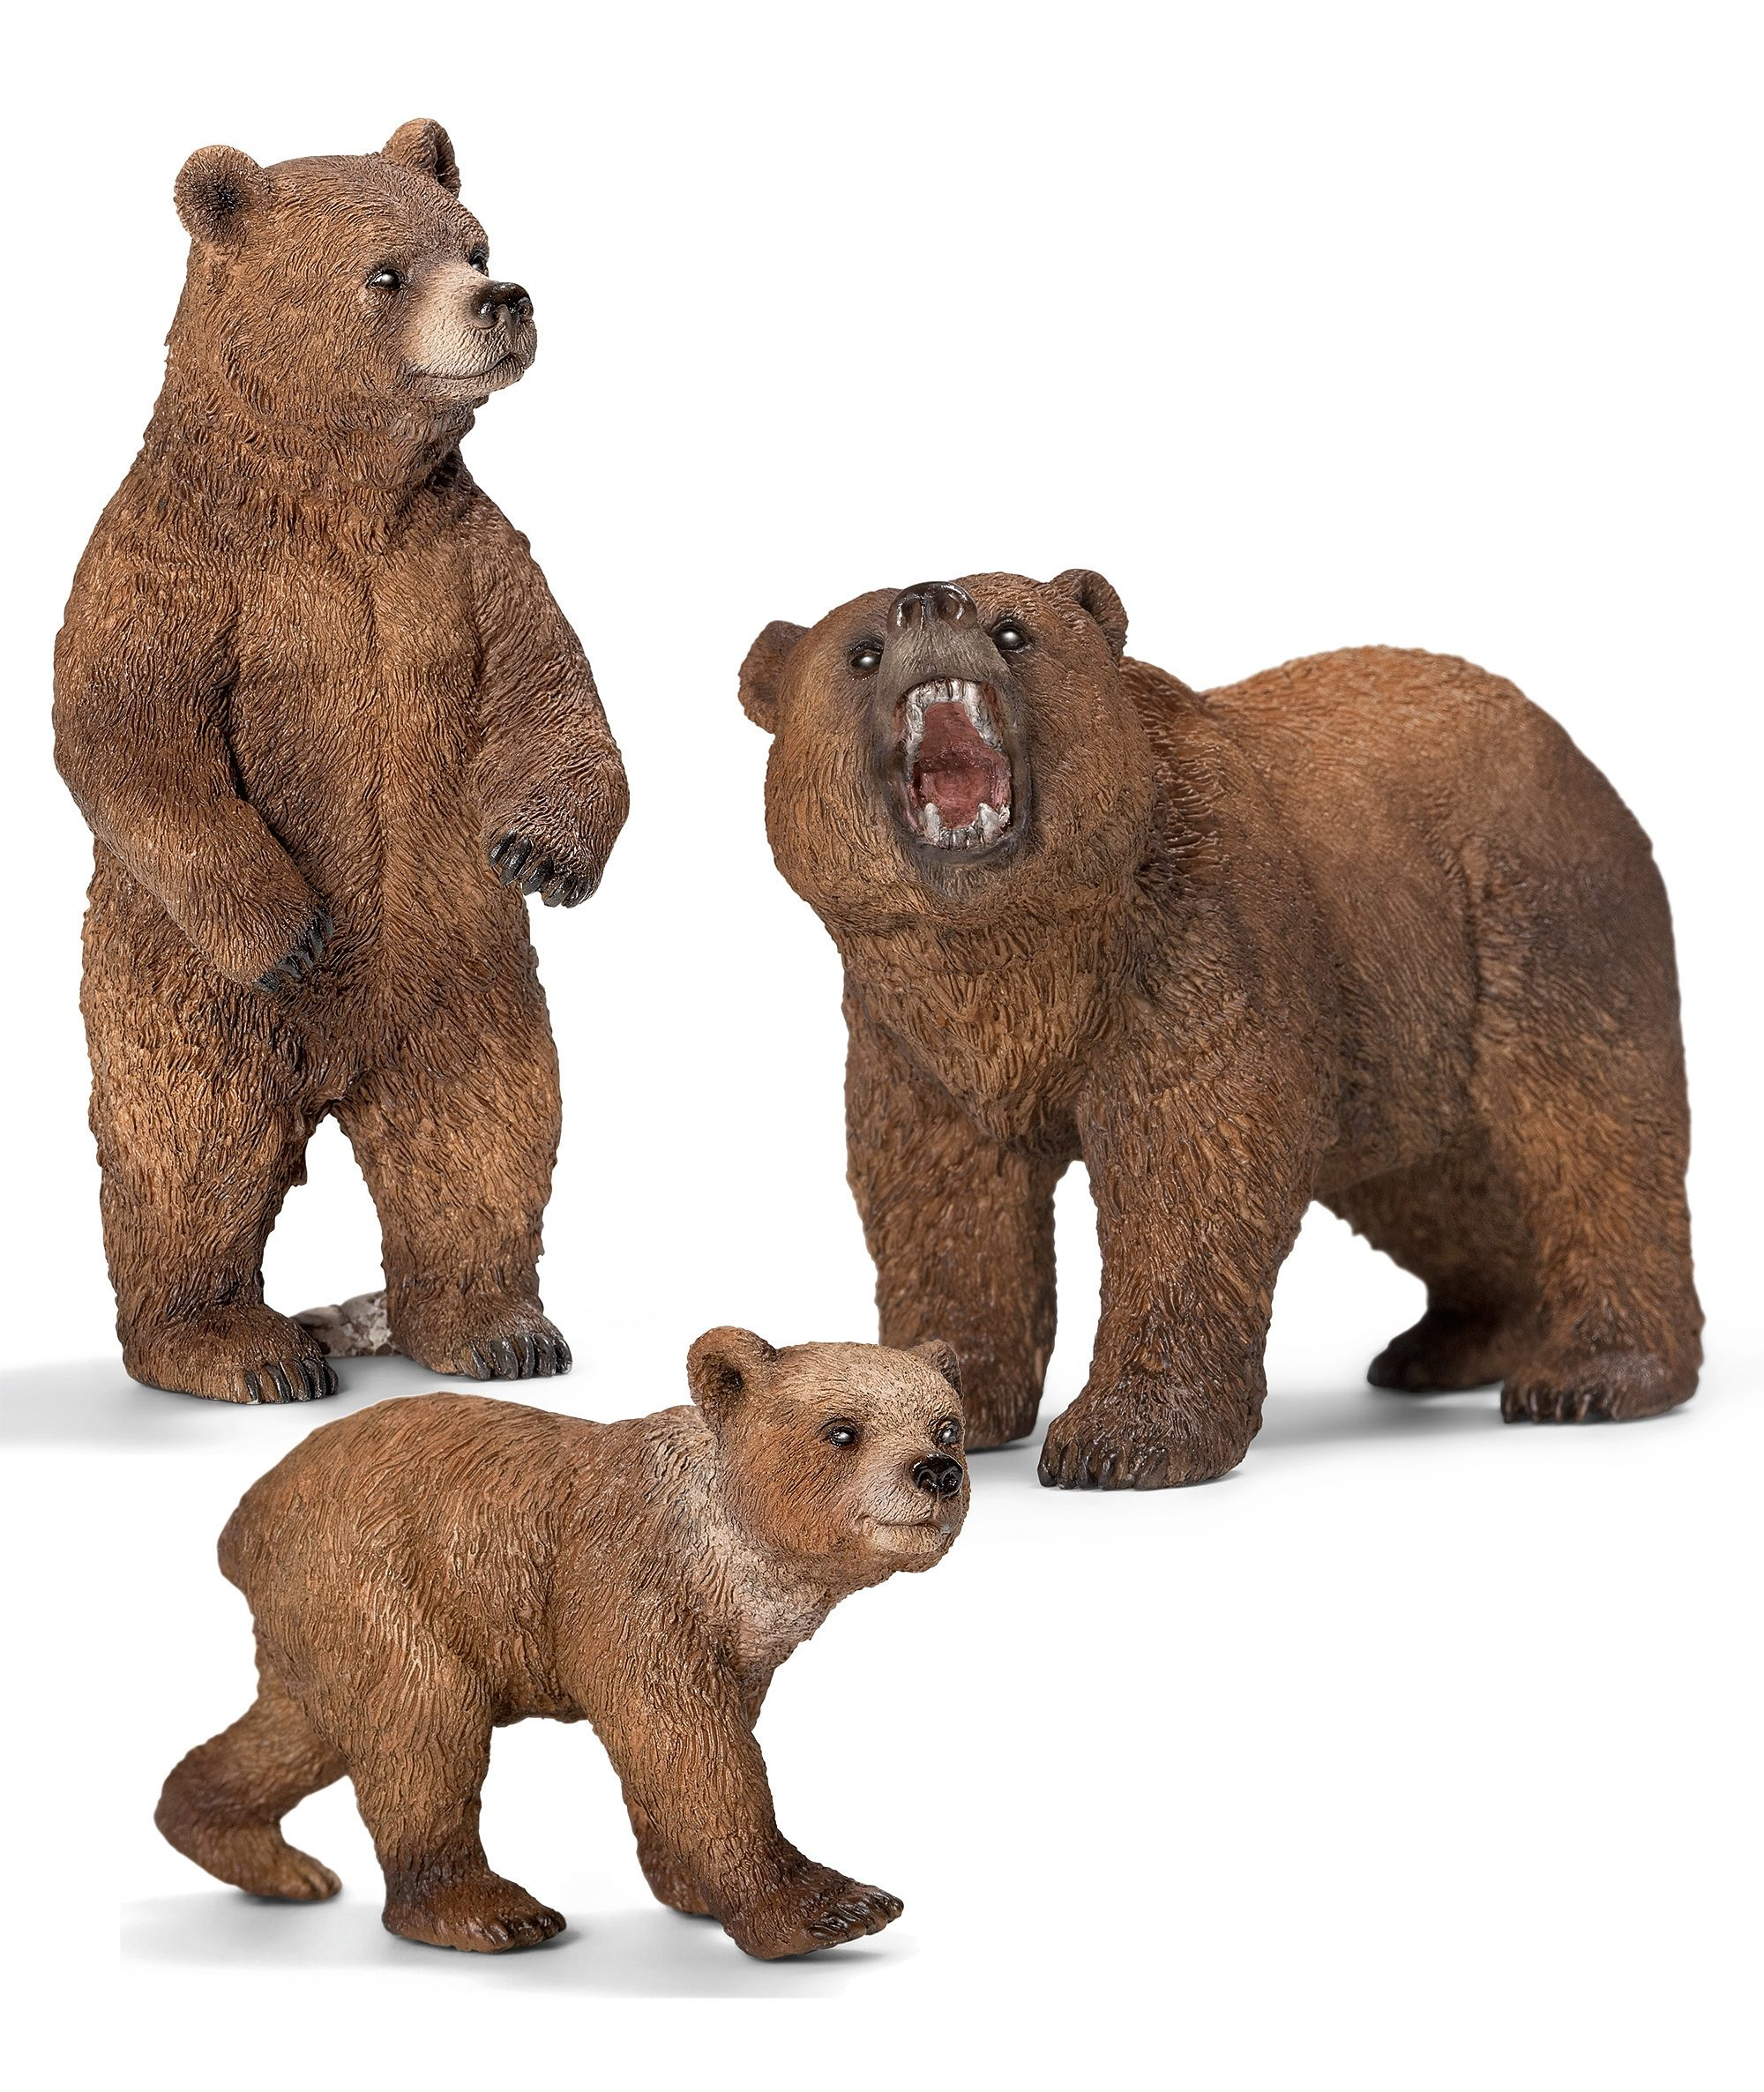 Schleich® Spielfigurenset 3-tlg., »World of Nature, Wild Life - Grizzly«